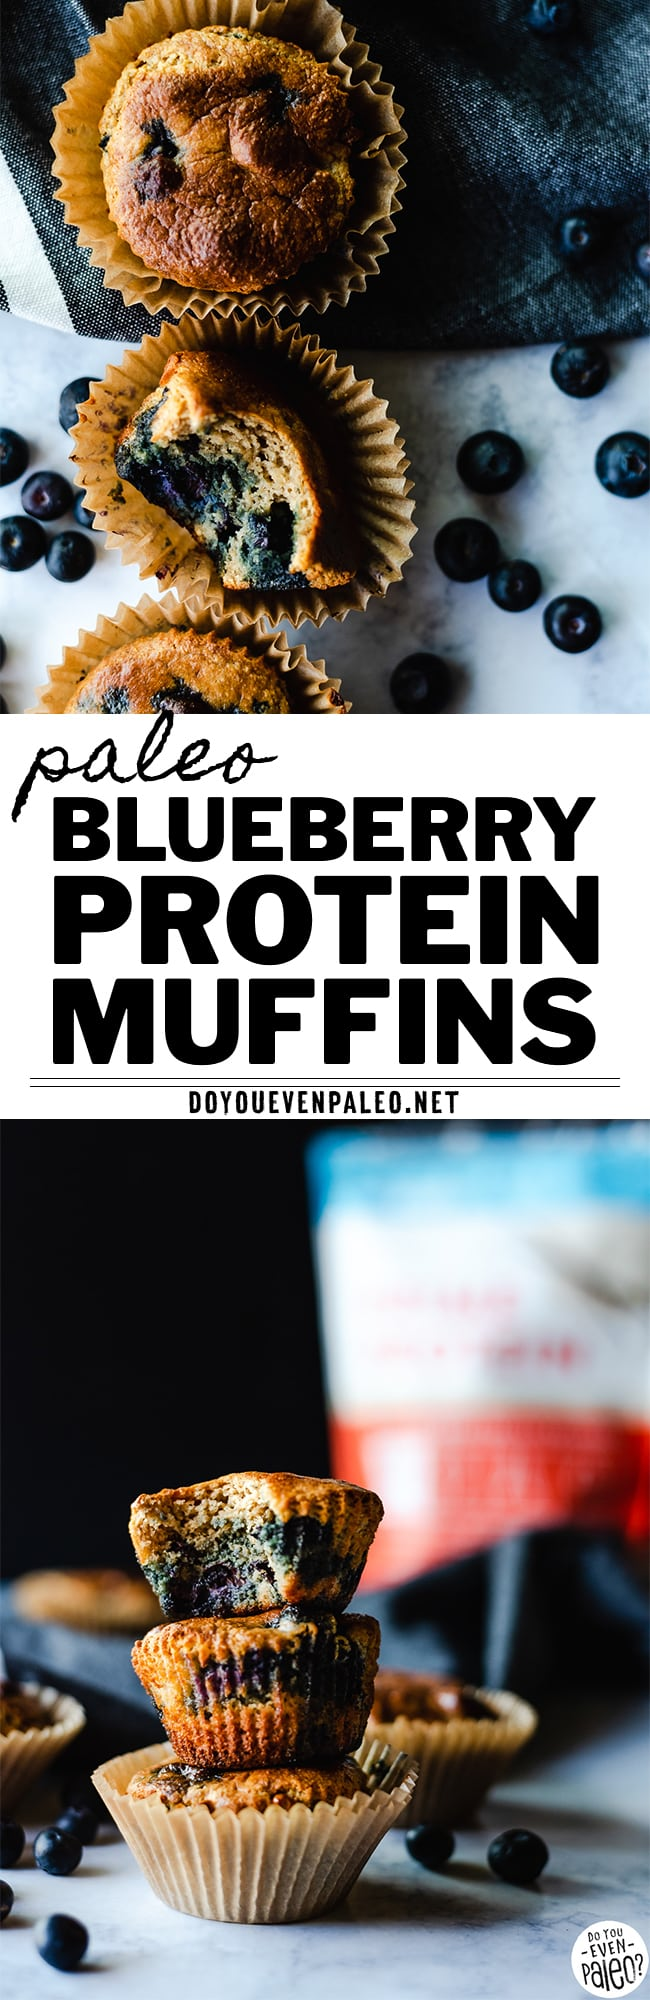 Image with text reading 'Paleo Blueberry Protein Muffins - DoYouEvenPaleo.net' with two images of blueberry muffins